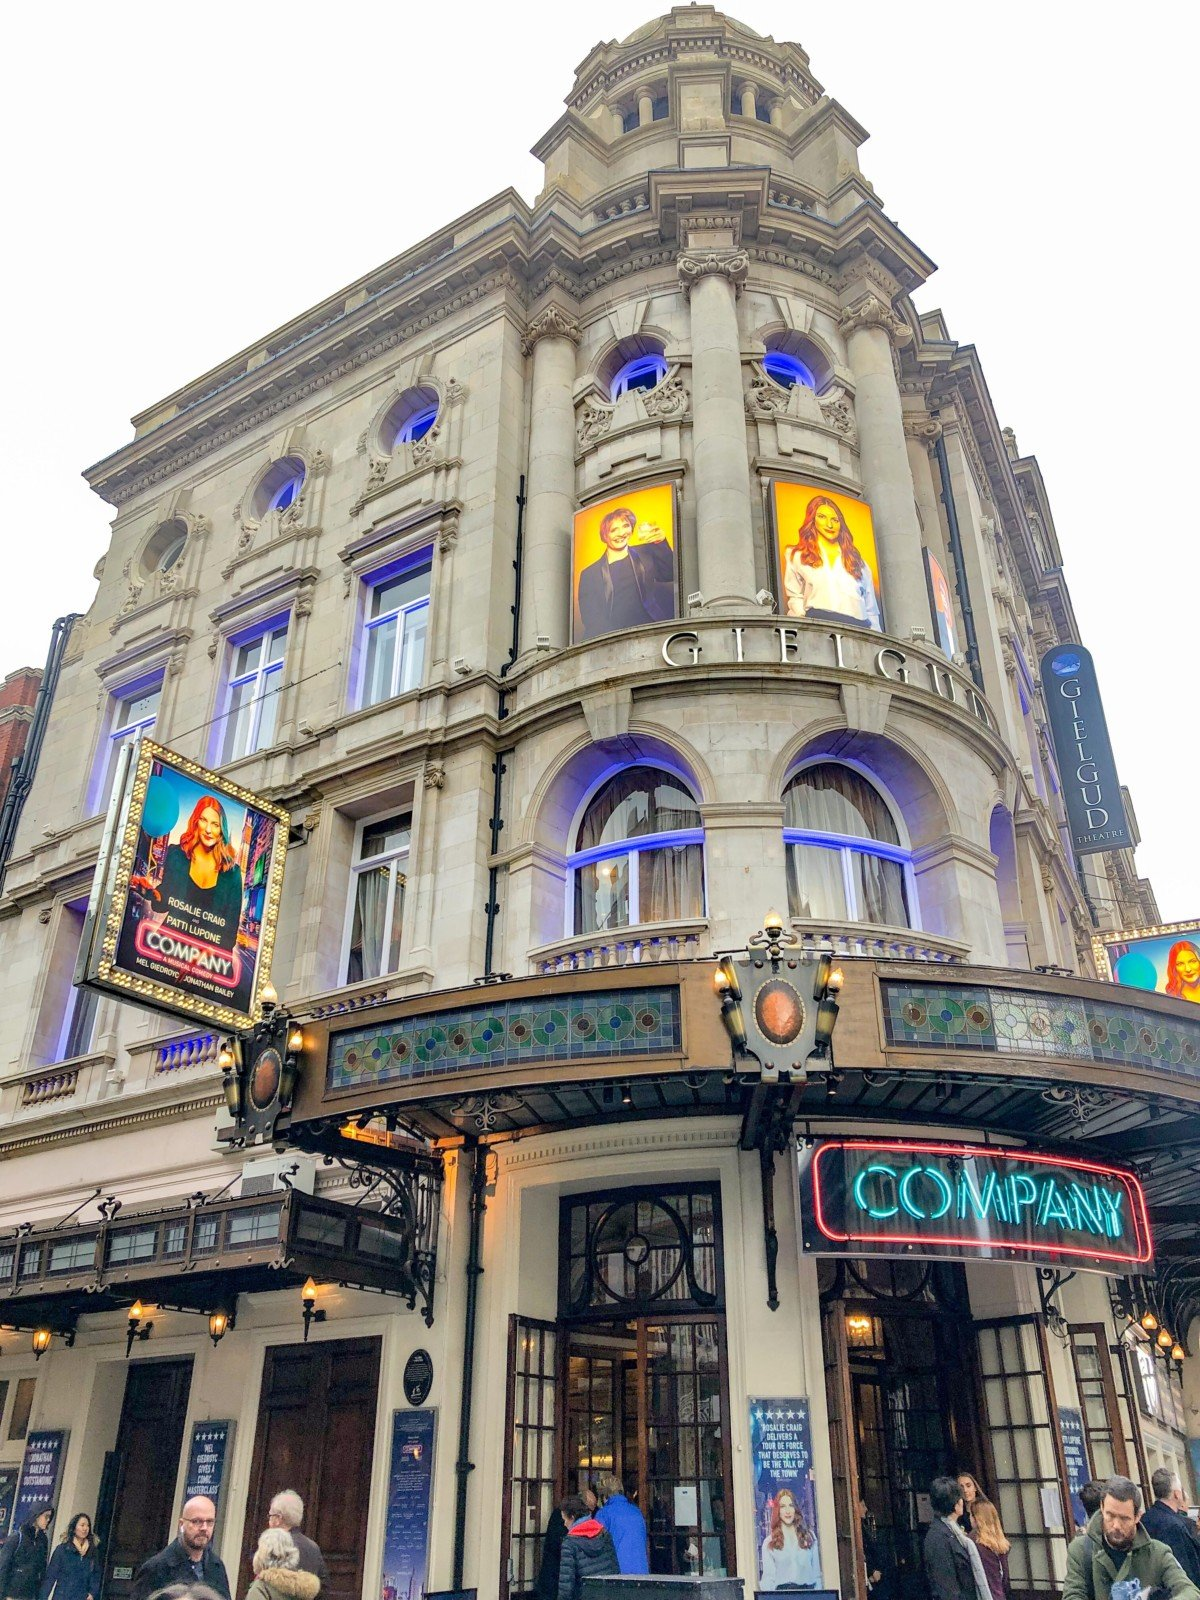 Company showing at the Gielgud Theatre, Shaftesbury Avenue in Londons Westend